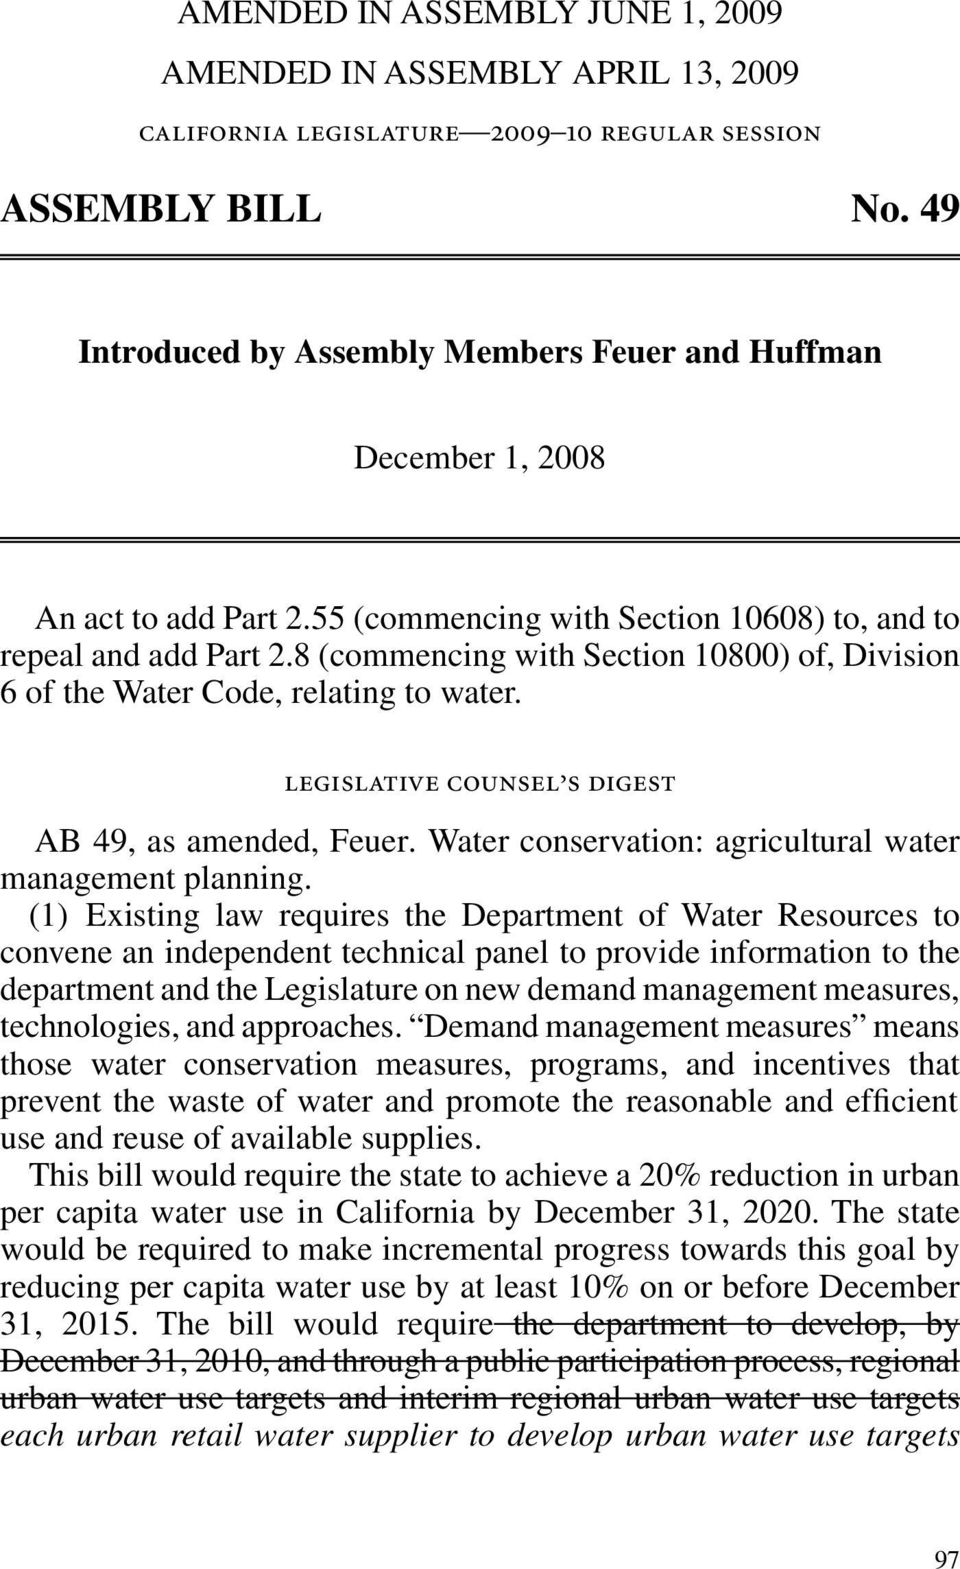 8 (commencing with Section 10800) of, Division 6 of the Water Code, relating to water. legislative counsel s digest AB 49, as amended, Feuer.